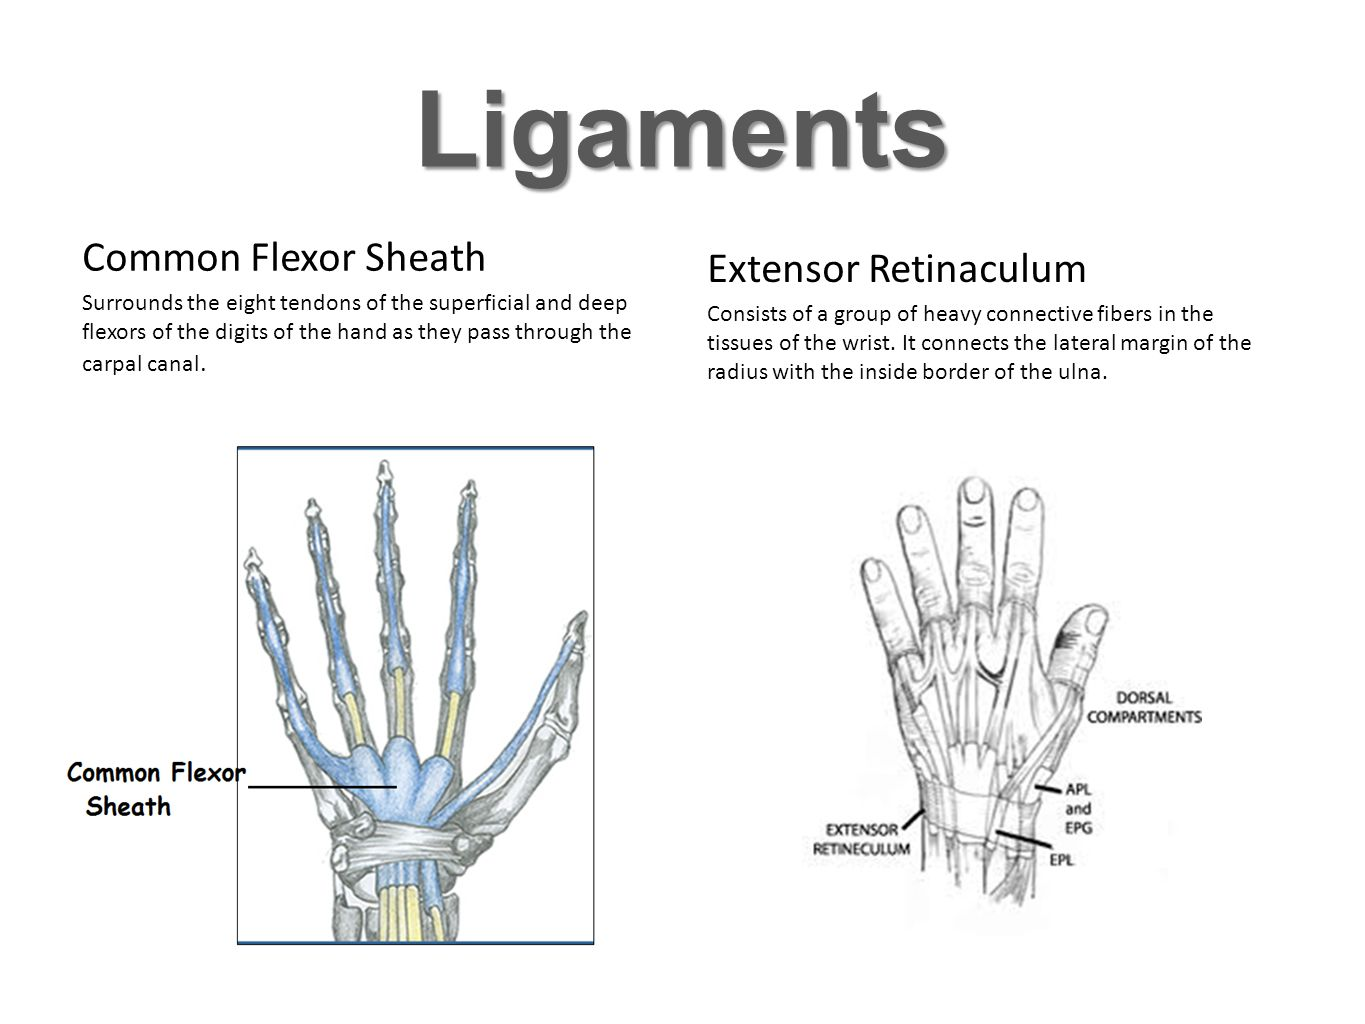 Ligaments Common Flexor Sheath Extensor Retinaculum